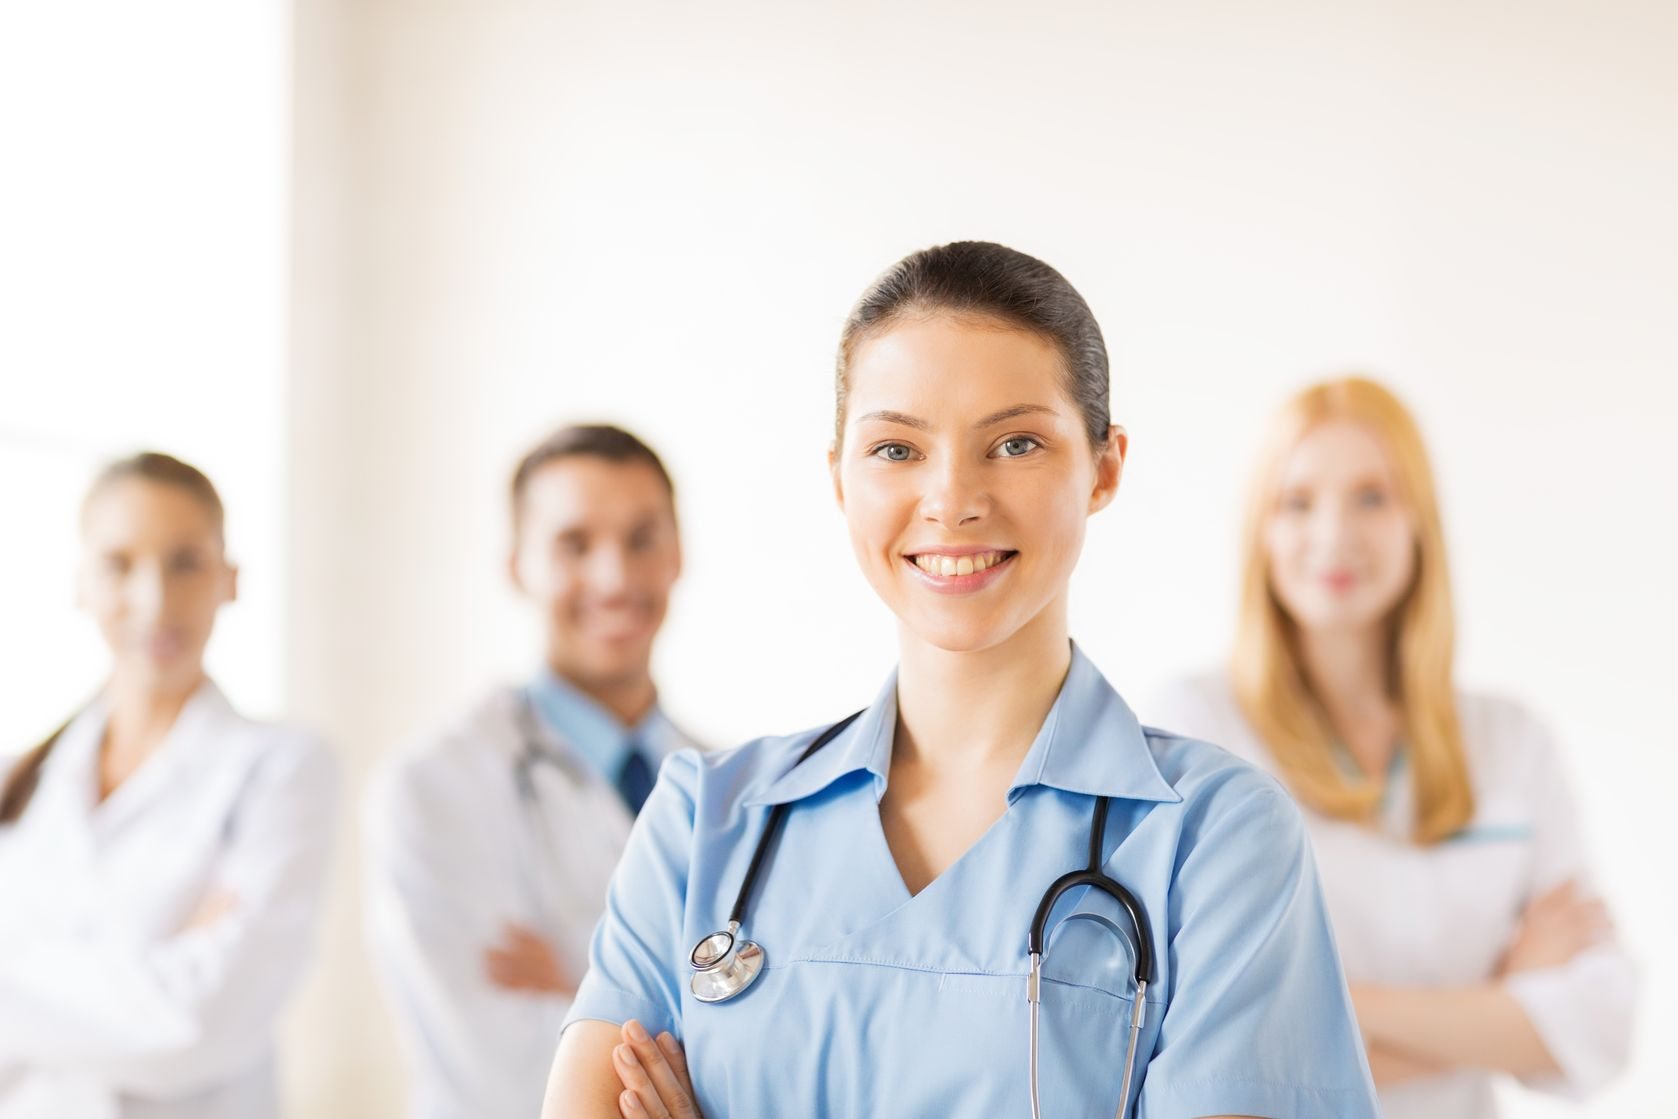 20 Allied Health Careers in High Demand